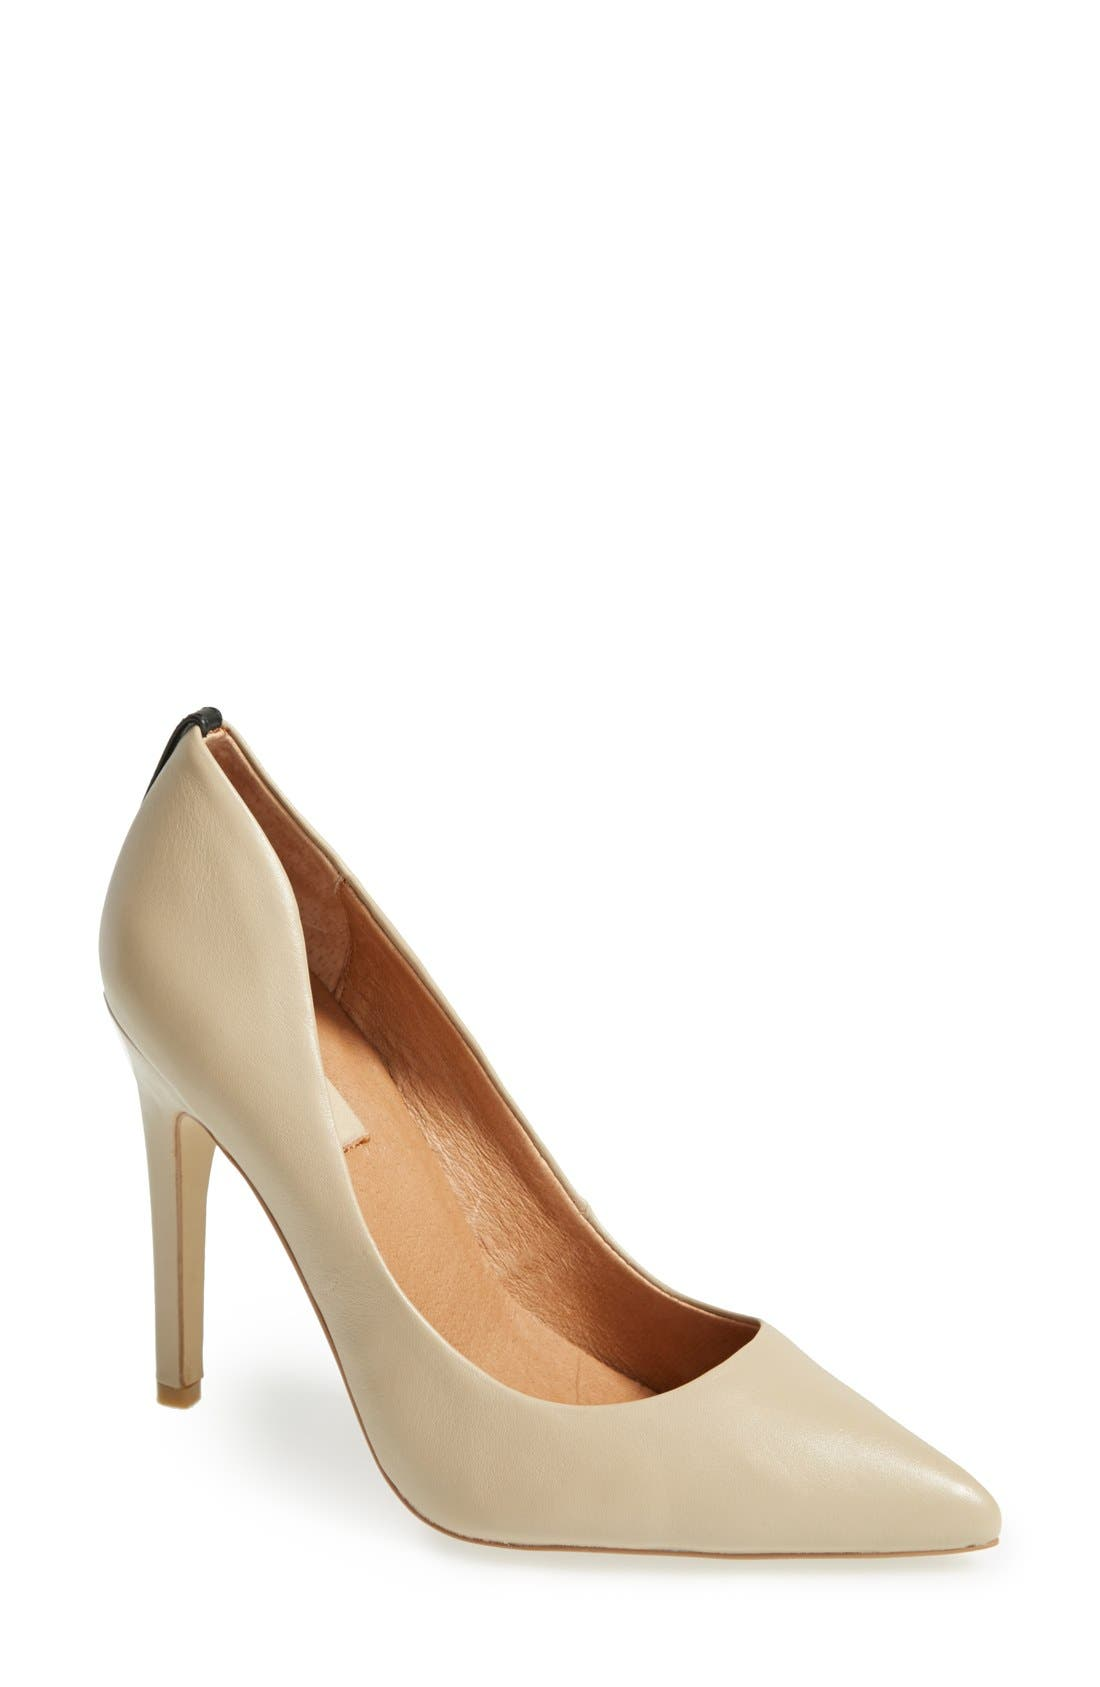 Alternate Image 1 Selected - Mia Limited Edition 'Jolie' Pointy Toe Pump (Women)